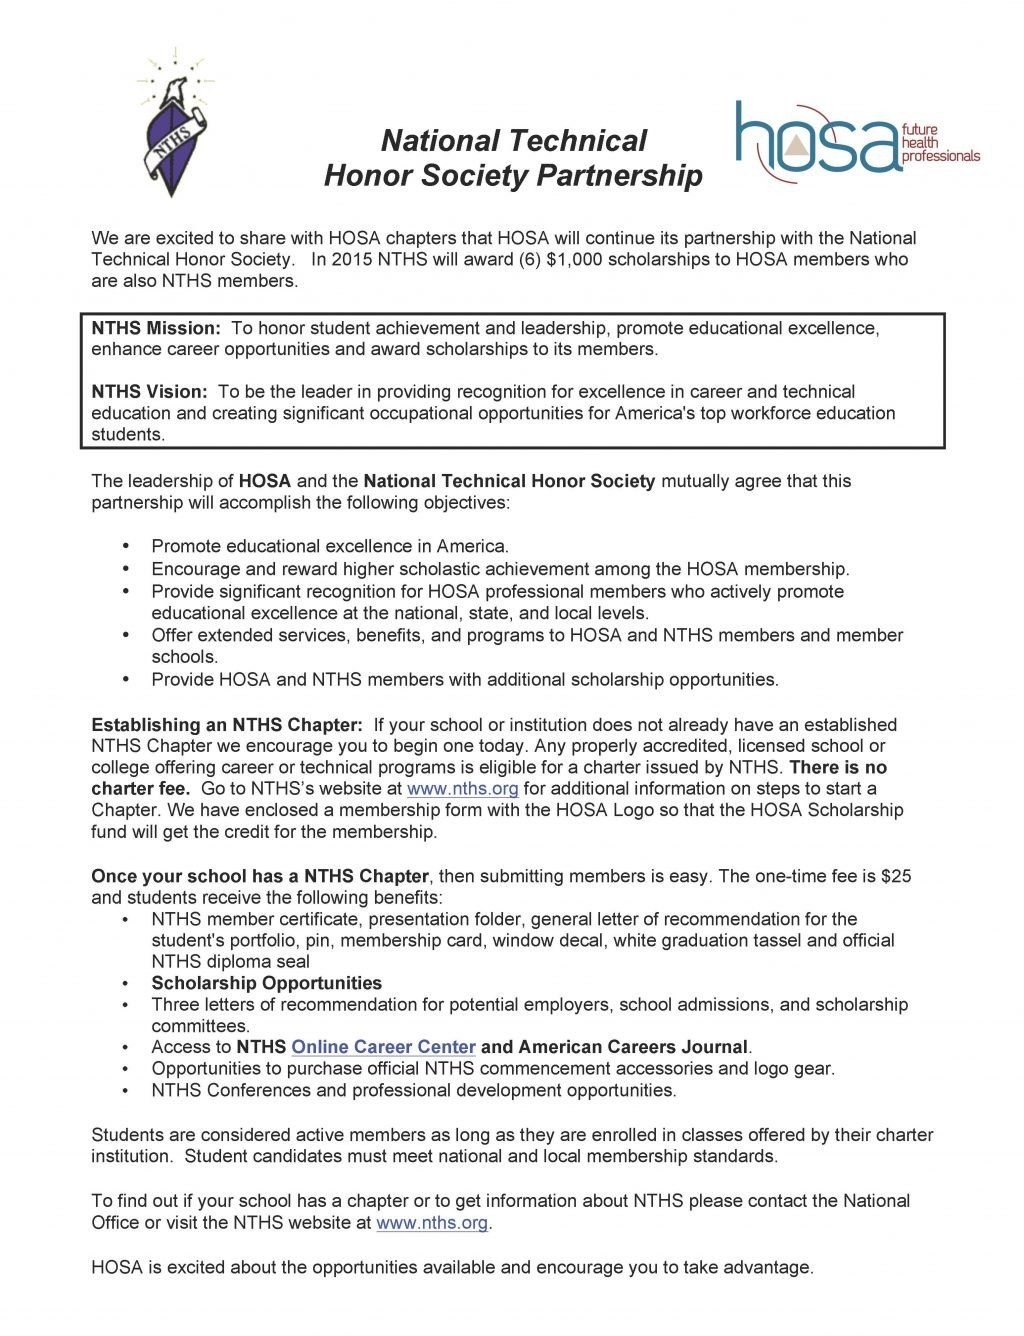 007 National Junior Honor Society Essay Example Cover Letter Nths Page 1 Template 1024x1336 Unique Honors Leadership Sample Large